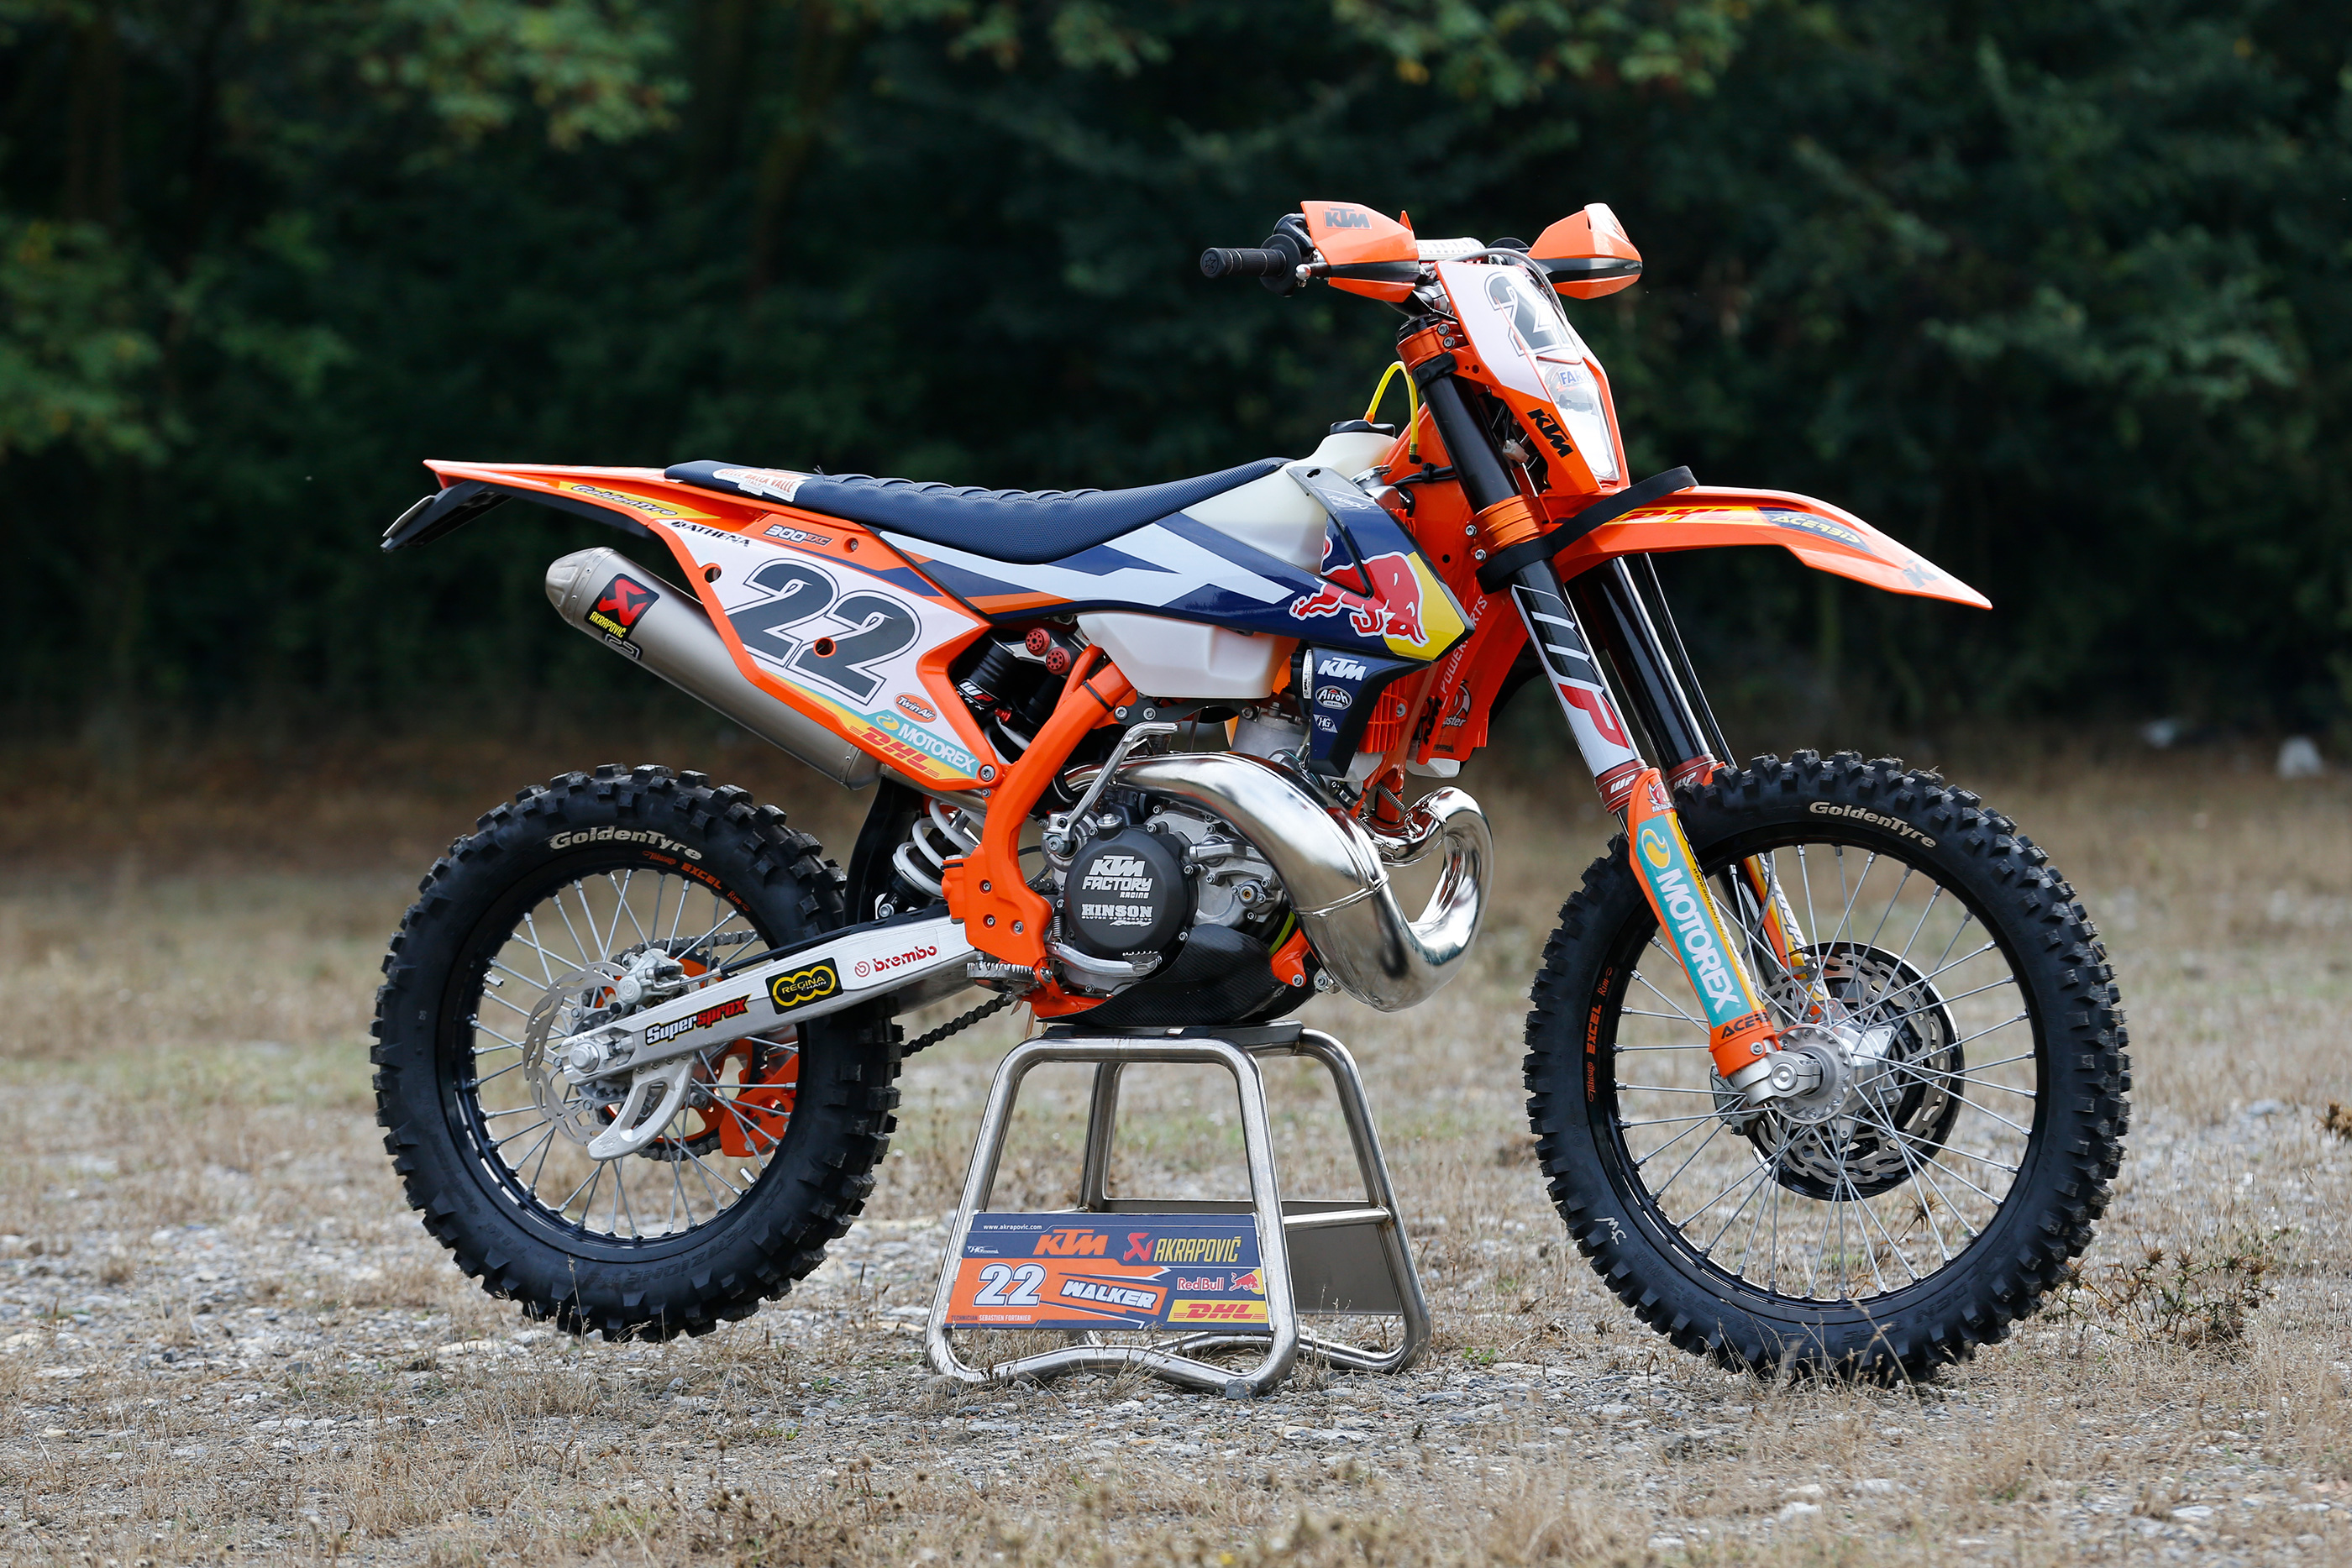 jonny walker s ktm 300 exc 2017 factory bike de ride review derestricted. Black Bedroom Furniture Sets. Home Design Ideas